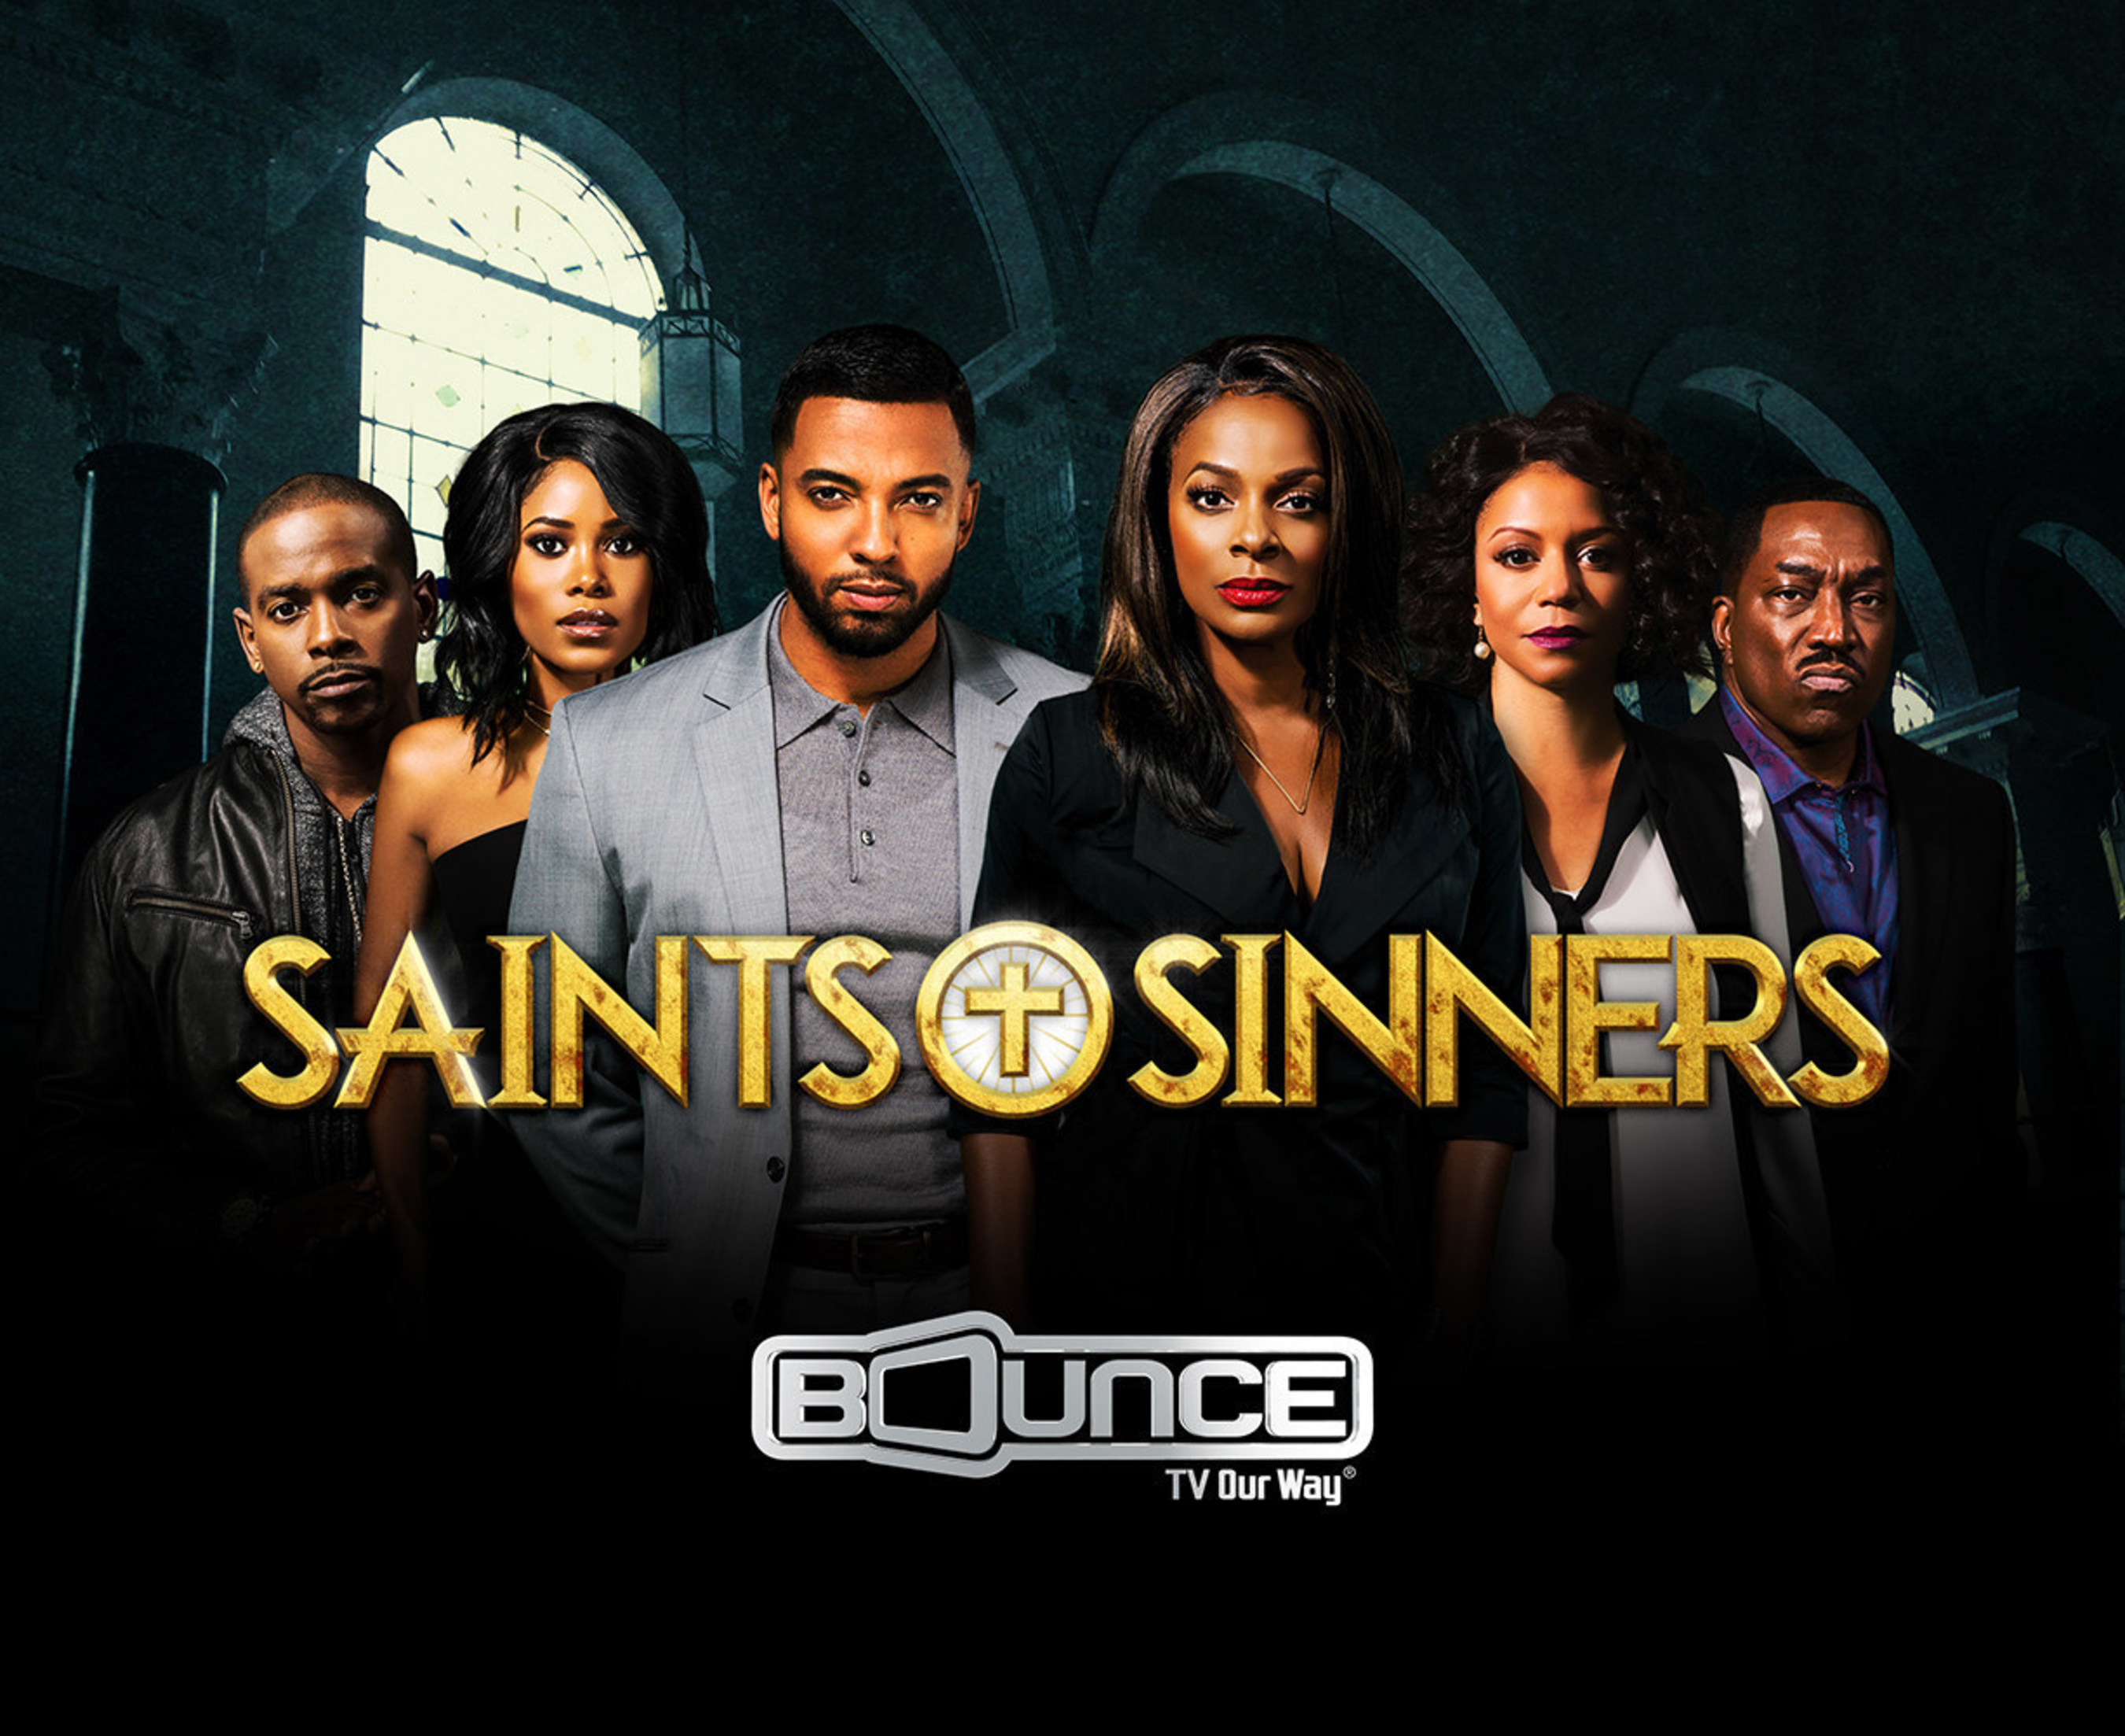 Bounce TV's first-ever original drama series Saints & Sinners is a smash hit. New episodes debut Sunday nights at 9:00 p.m. ET.  Visit BounceTV.com for local channel information.